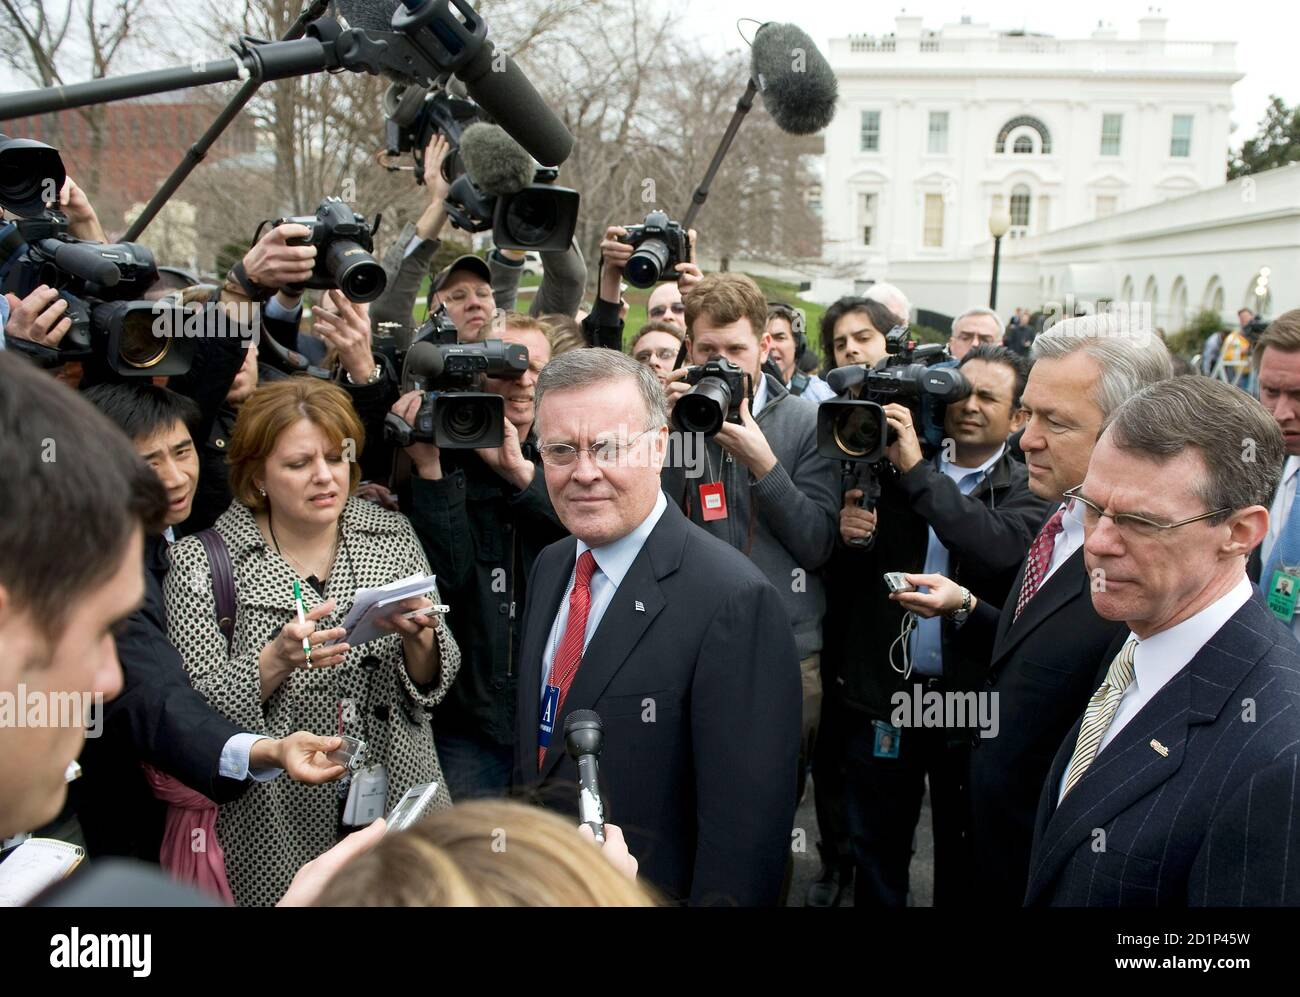 Bank of America Corp. Chief Executive Kenneth Lewis speaks to reporters at the White House after a meeting about the economy with U.S. President Barack Obama in the State Dining Room in Washington, March 27, 2009. Behind him are US Bancorp. Chief Executive Richard Davis (R) and Wells Fargo's Chief Executive John Stumpf (2nd R). Obama meets with top U.S. bankers on Friday to hash out plans to reform Wall Street, rid financial institutions of bad debts and jumpstart lending in an effort to pull the United States out of recession.  REUTERS/Larry Downing   (UNITED STATES POLITICS BUSINESS) Stock Photo